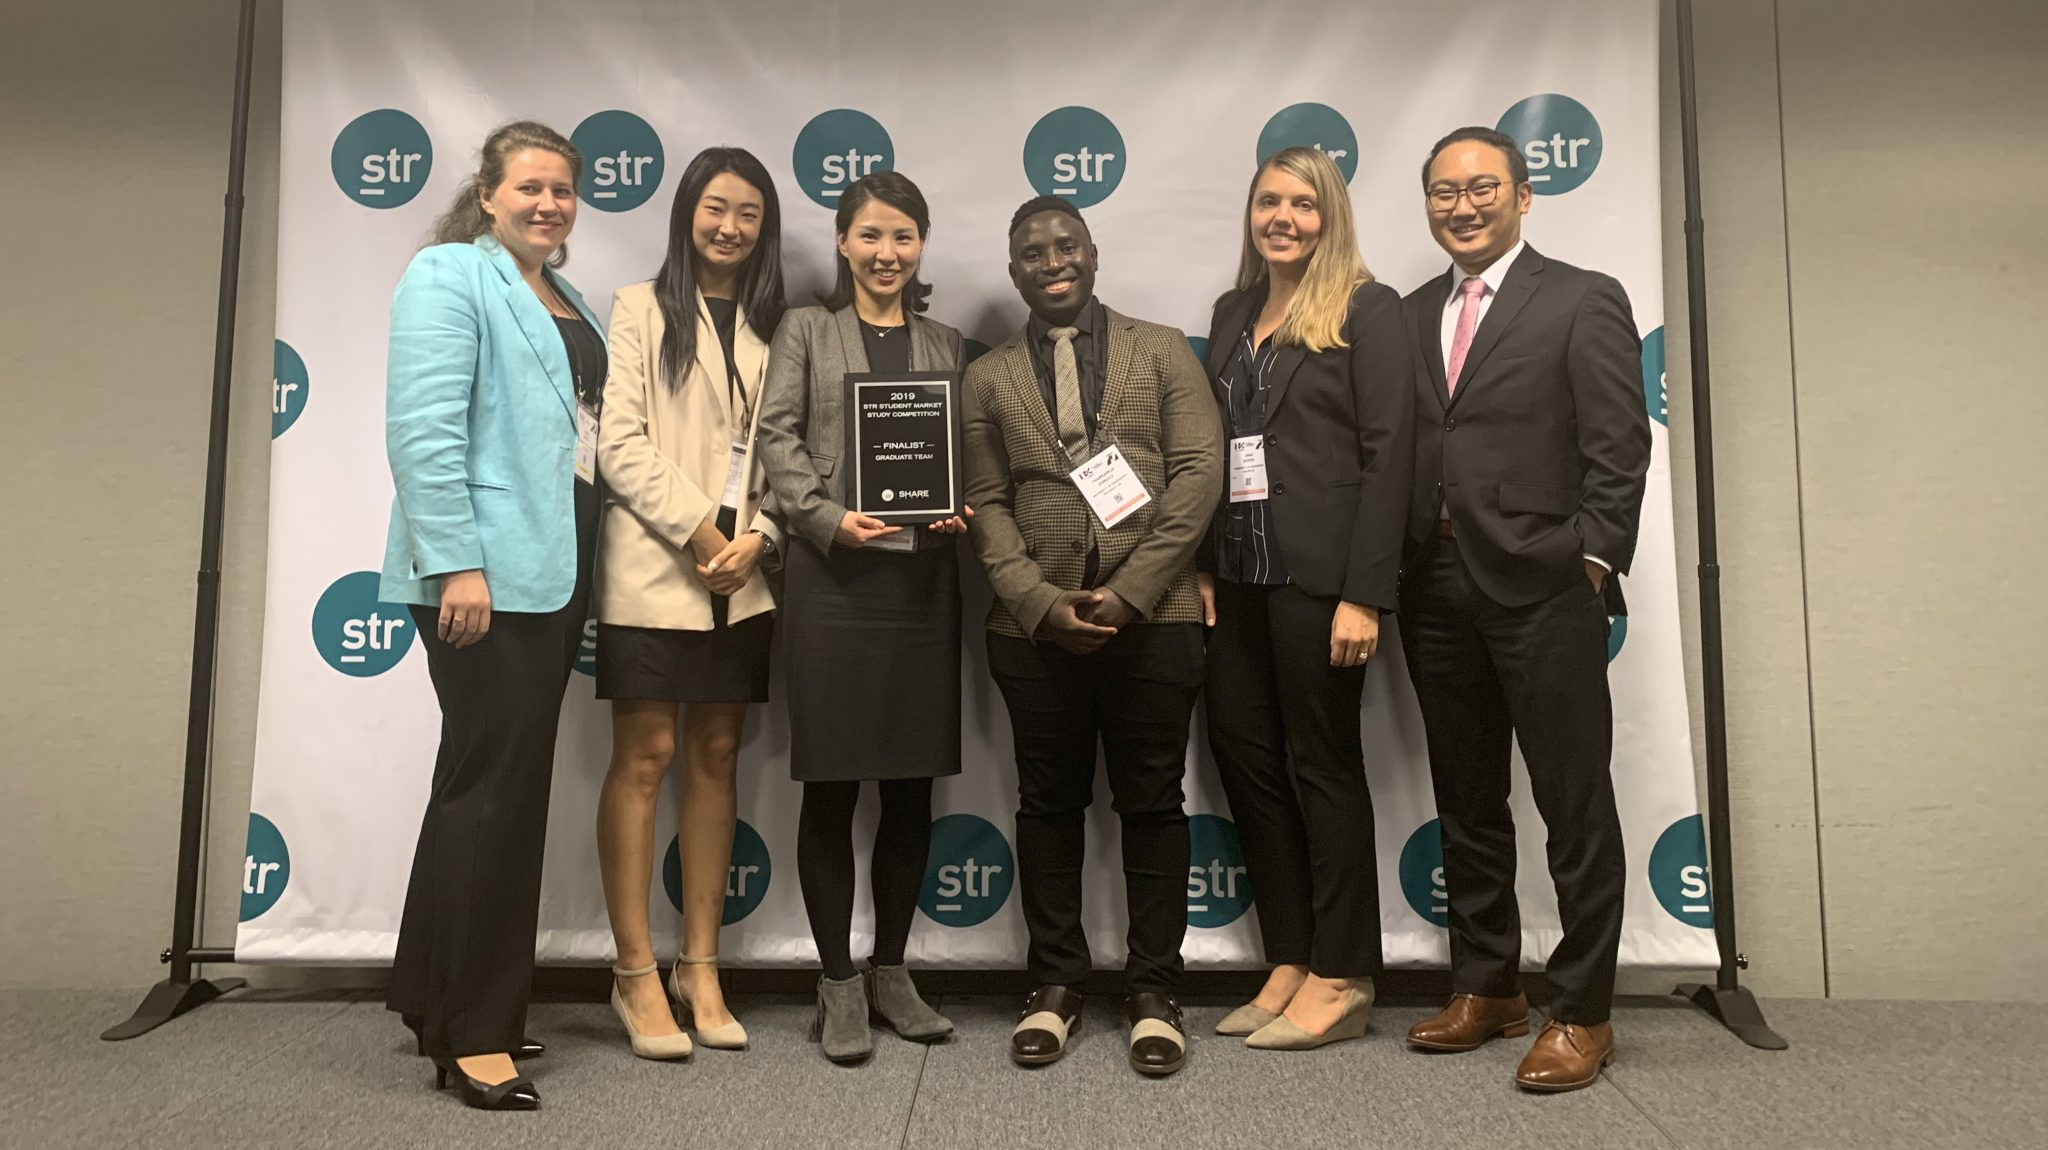 Cindy Choi, assistant professor of nutrition and hospitality management, congratulates hospitality management doctoral students (left to right) Olena Ciftci of Ukraine, Hayeon Choi of South Korea, Thamsie Jongile of South Africa, Inna Soifer of Russia, and Jangwoo Jo of South Korea for being recognized as finalists in the STR Student Market Study Competition in New York this November. Submitted photo